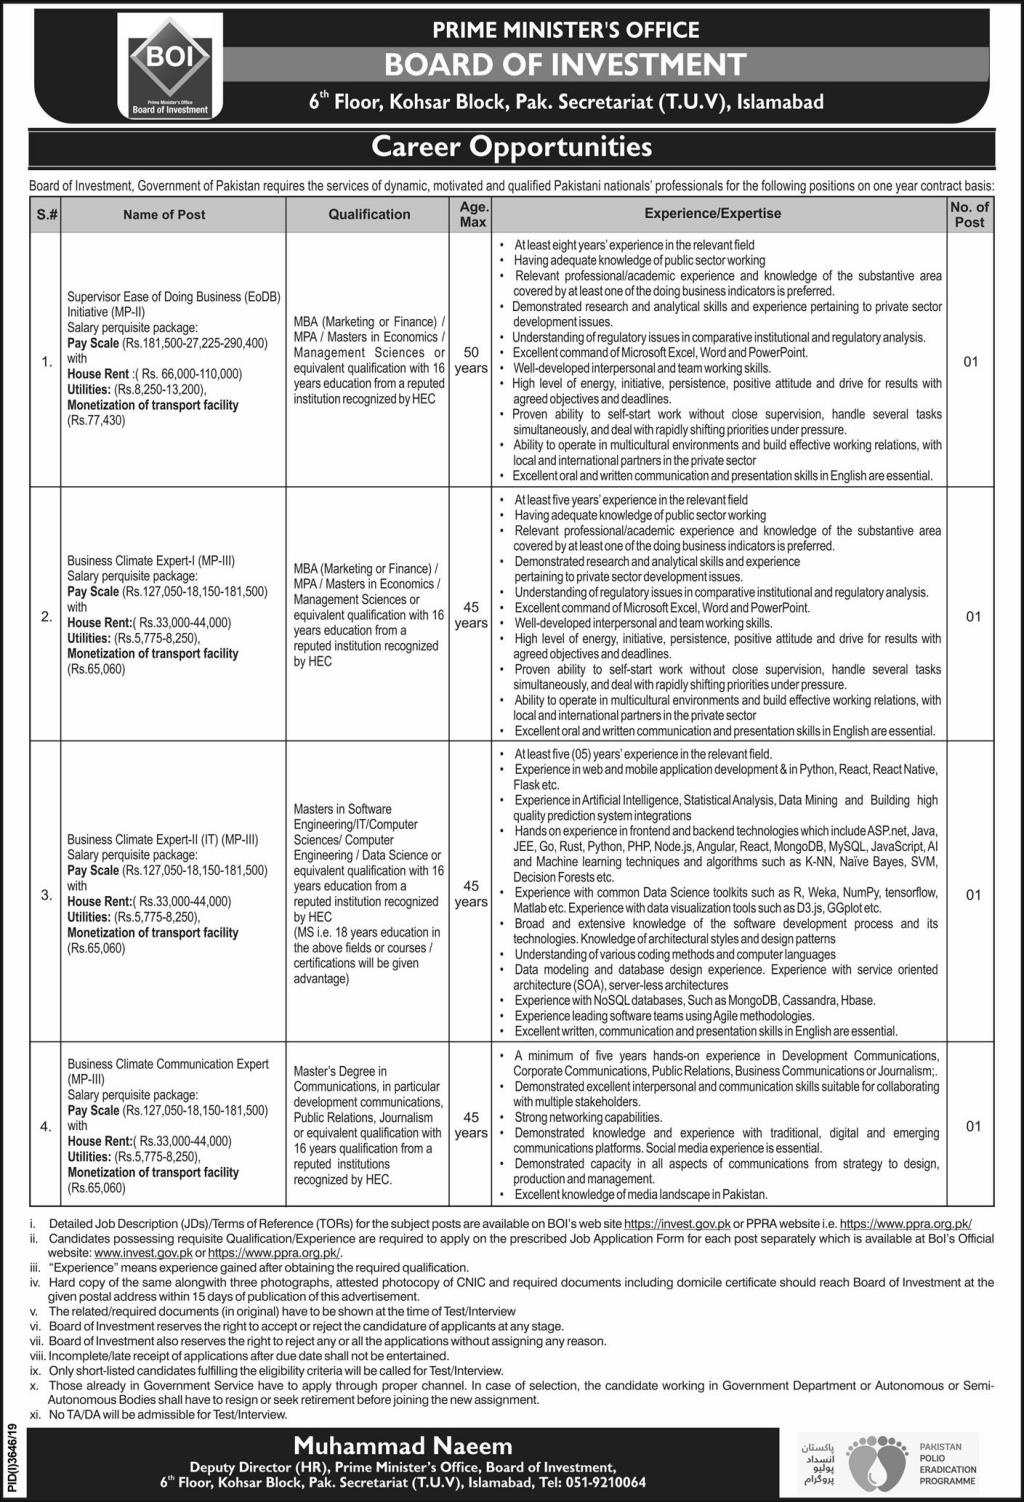 Board of Investment Jobs 2020 Prime Minister Office Islamabad Latest